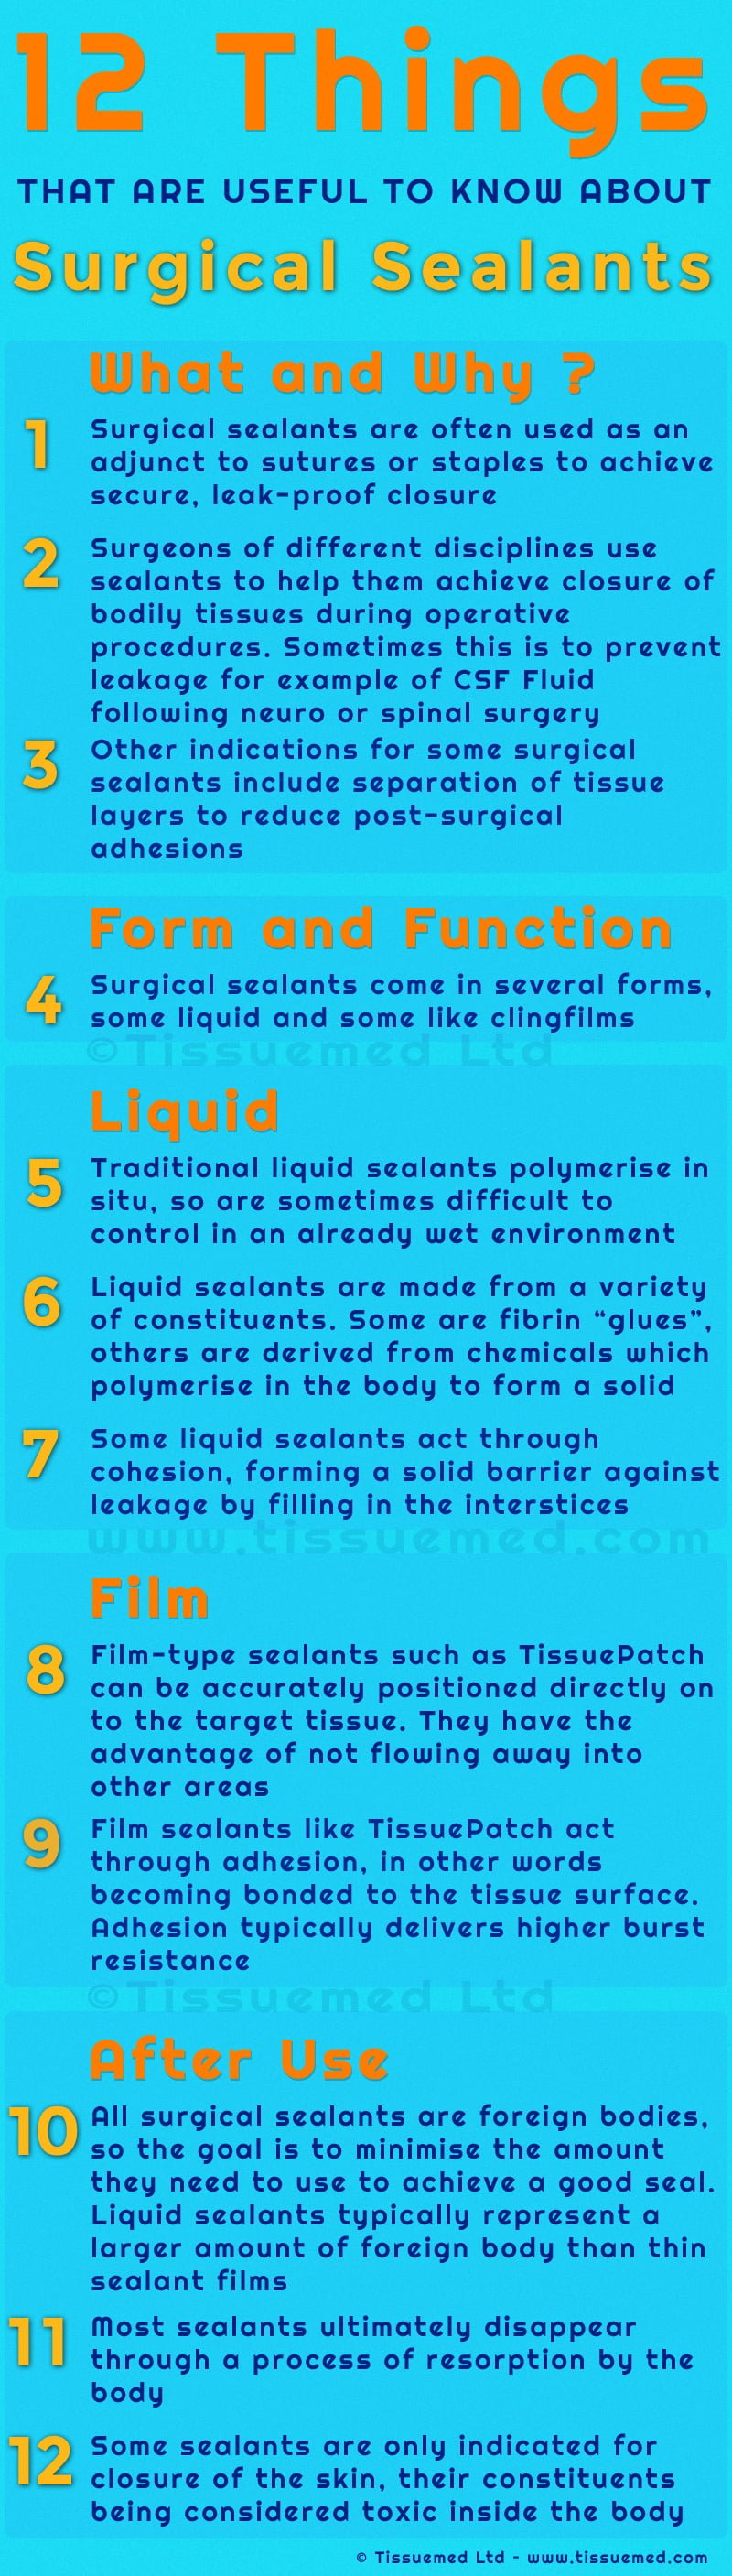 12 Things Infographic about surgical sealants